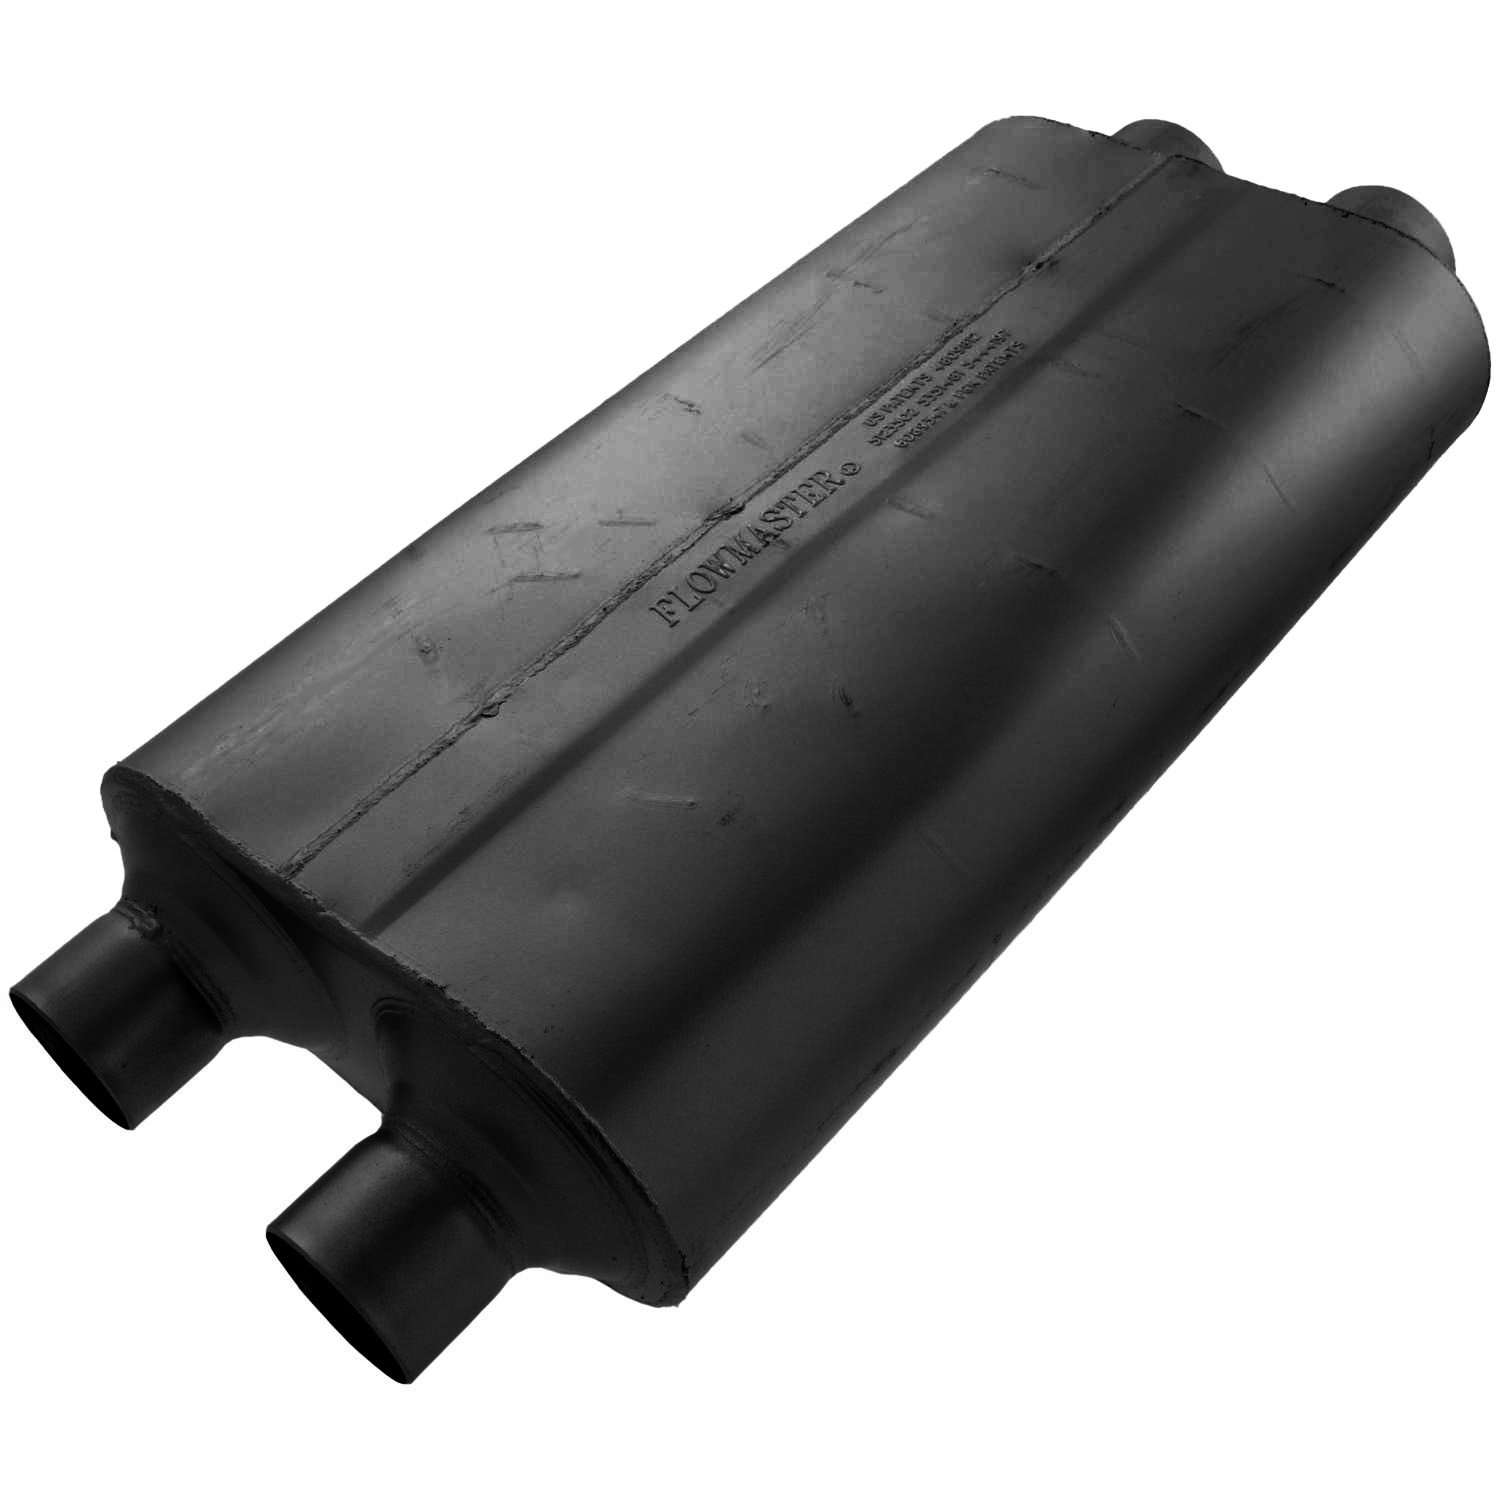 Flowmaster 530504 50 Big Block Muffler 2.50 Dual OUT Mild Sound 3.00 Dual IN